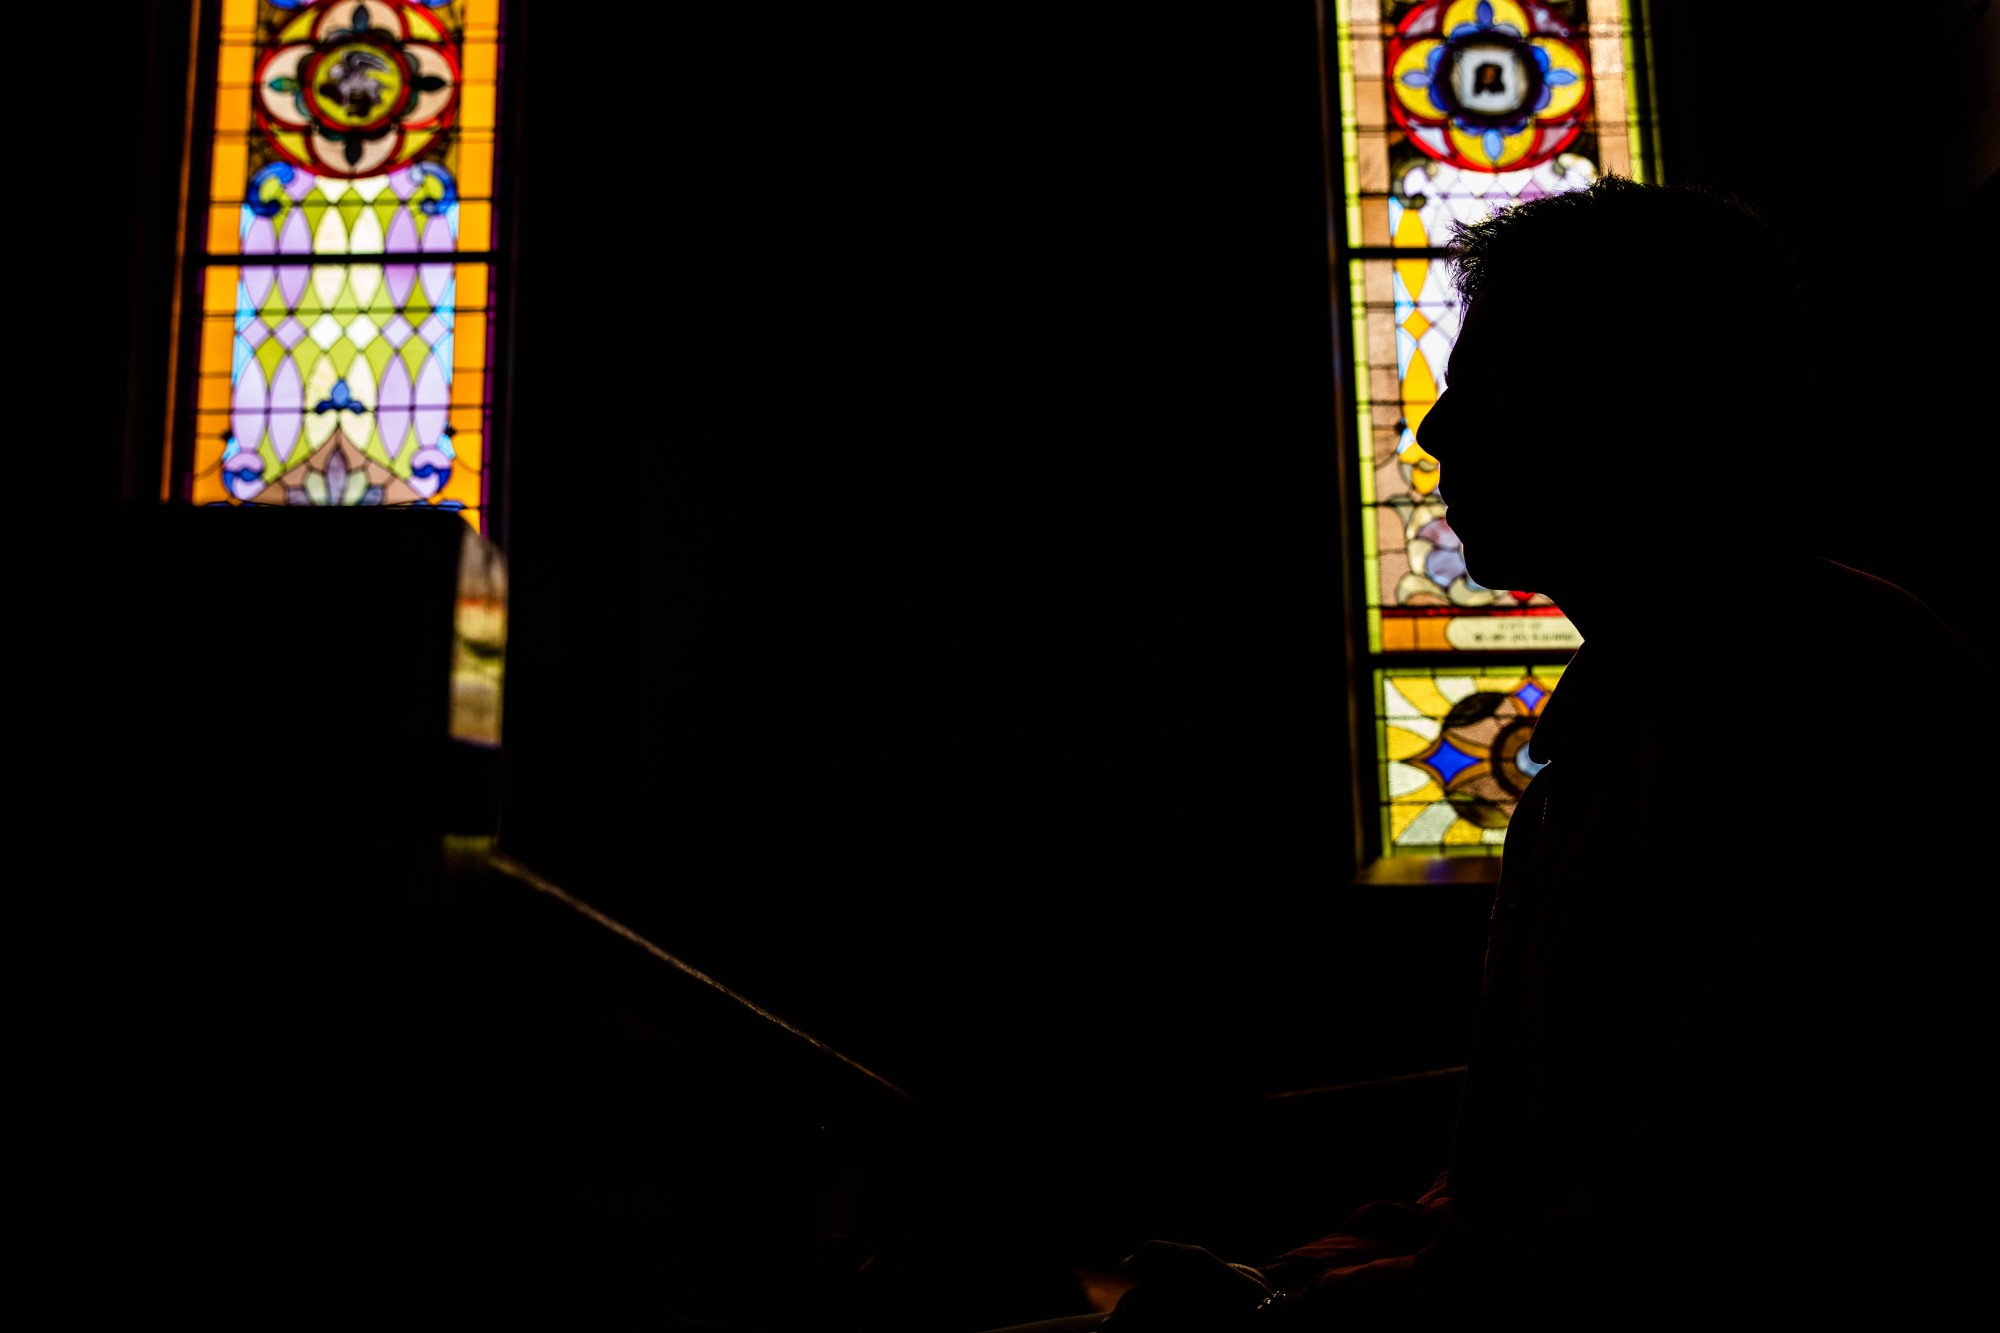 Michael Massinople, a Catholic student at Ohio University, sits at a pew inside St. Paul Catholic Church in Athens, Ohio, on Wednesday, Sept. 16, 2020.